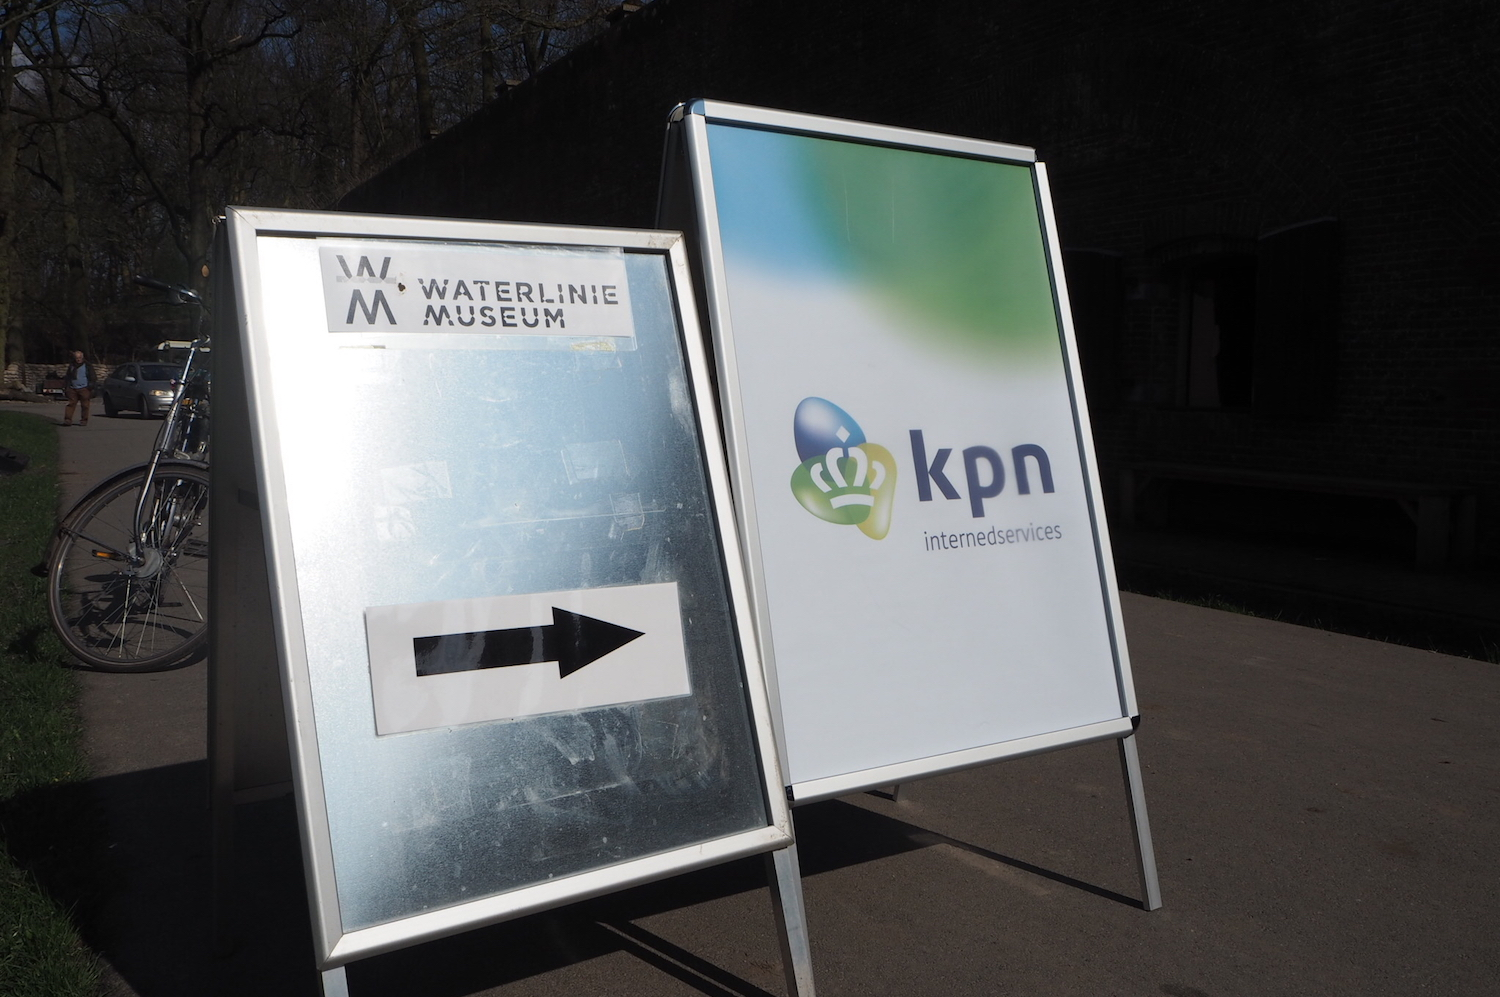 kpn-internedservices-security-awareness-event-welkom